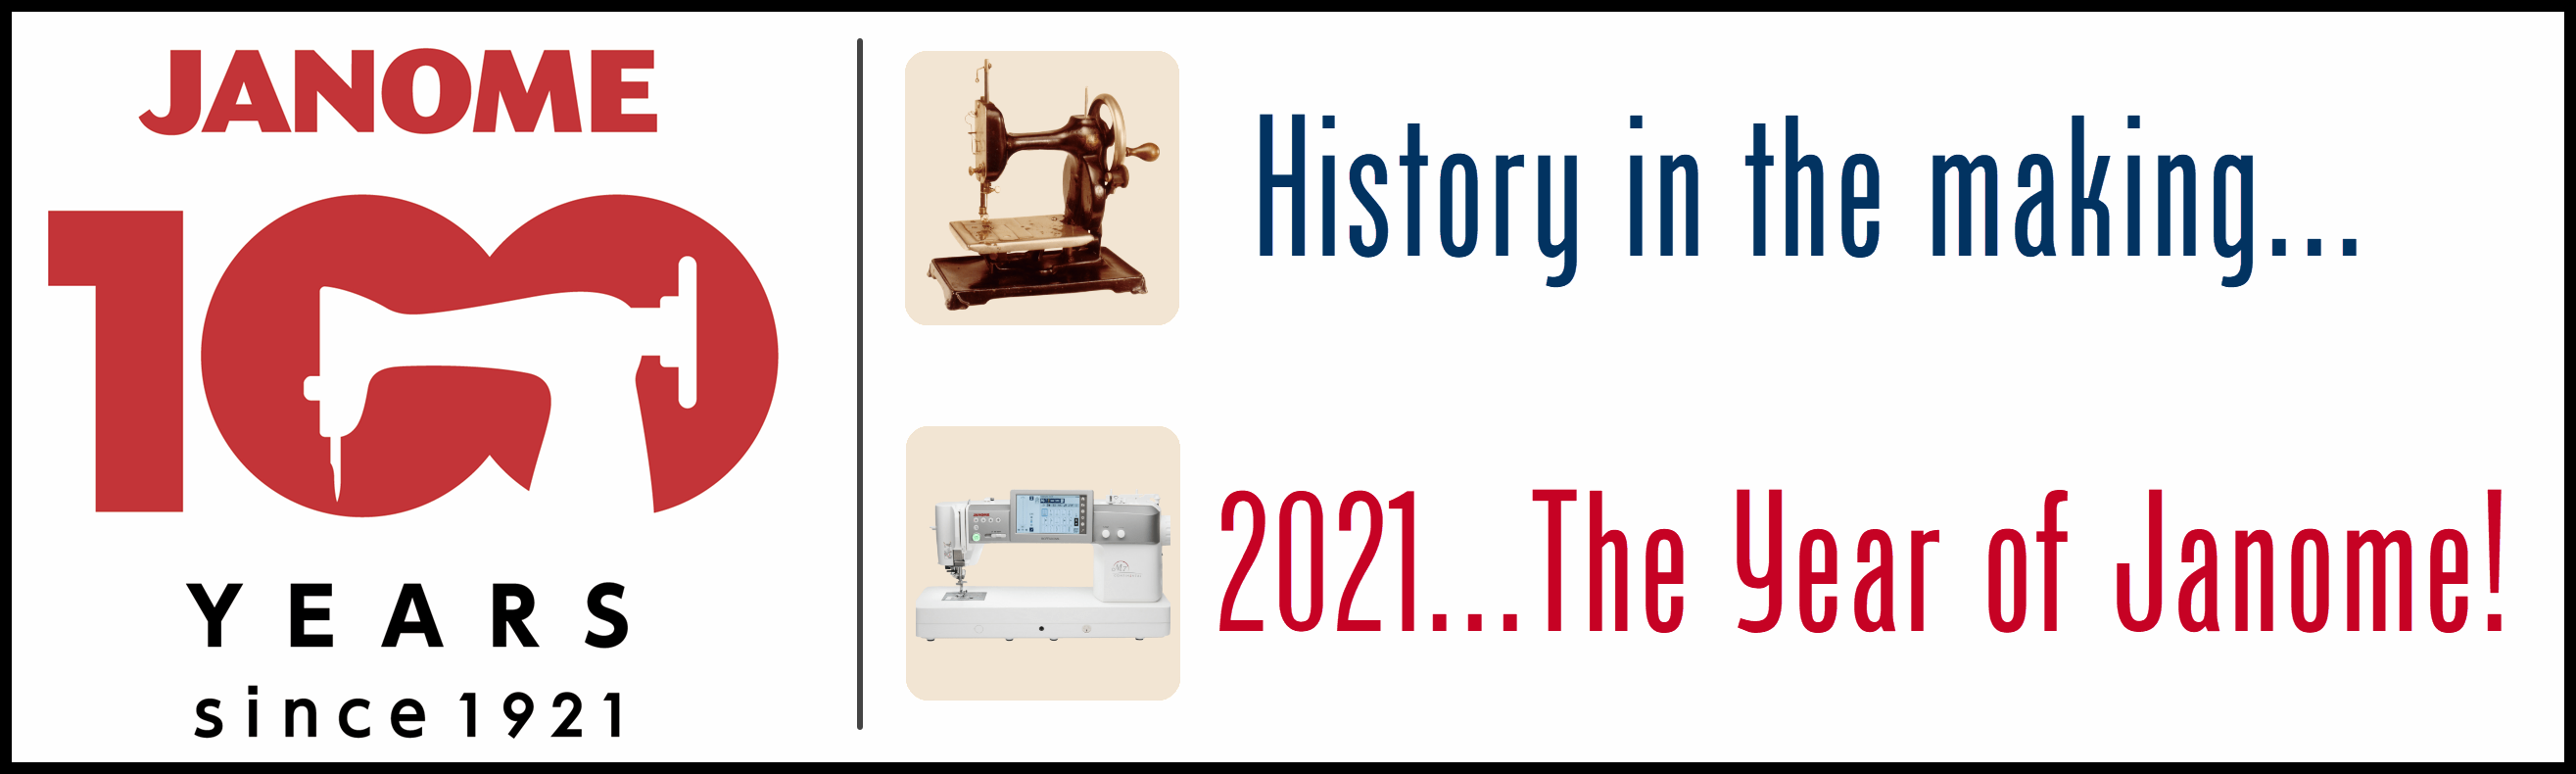 2021 - The Year of Janome